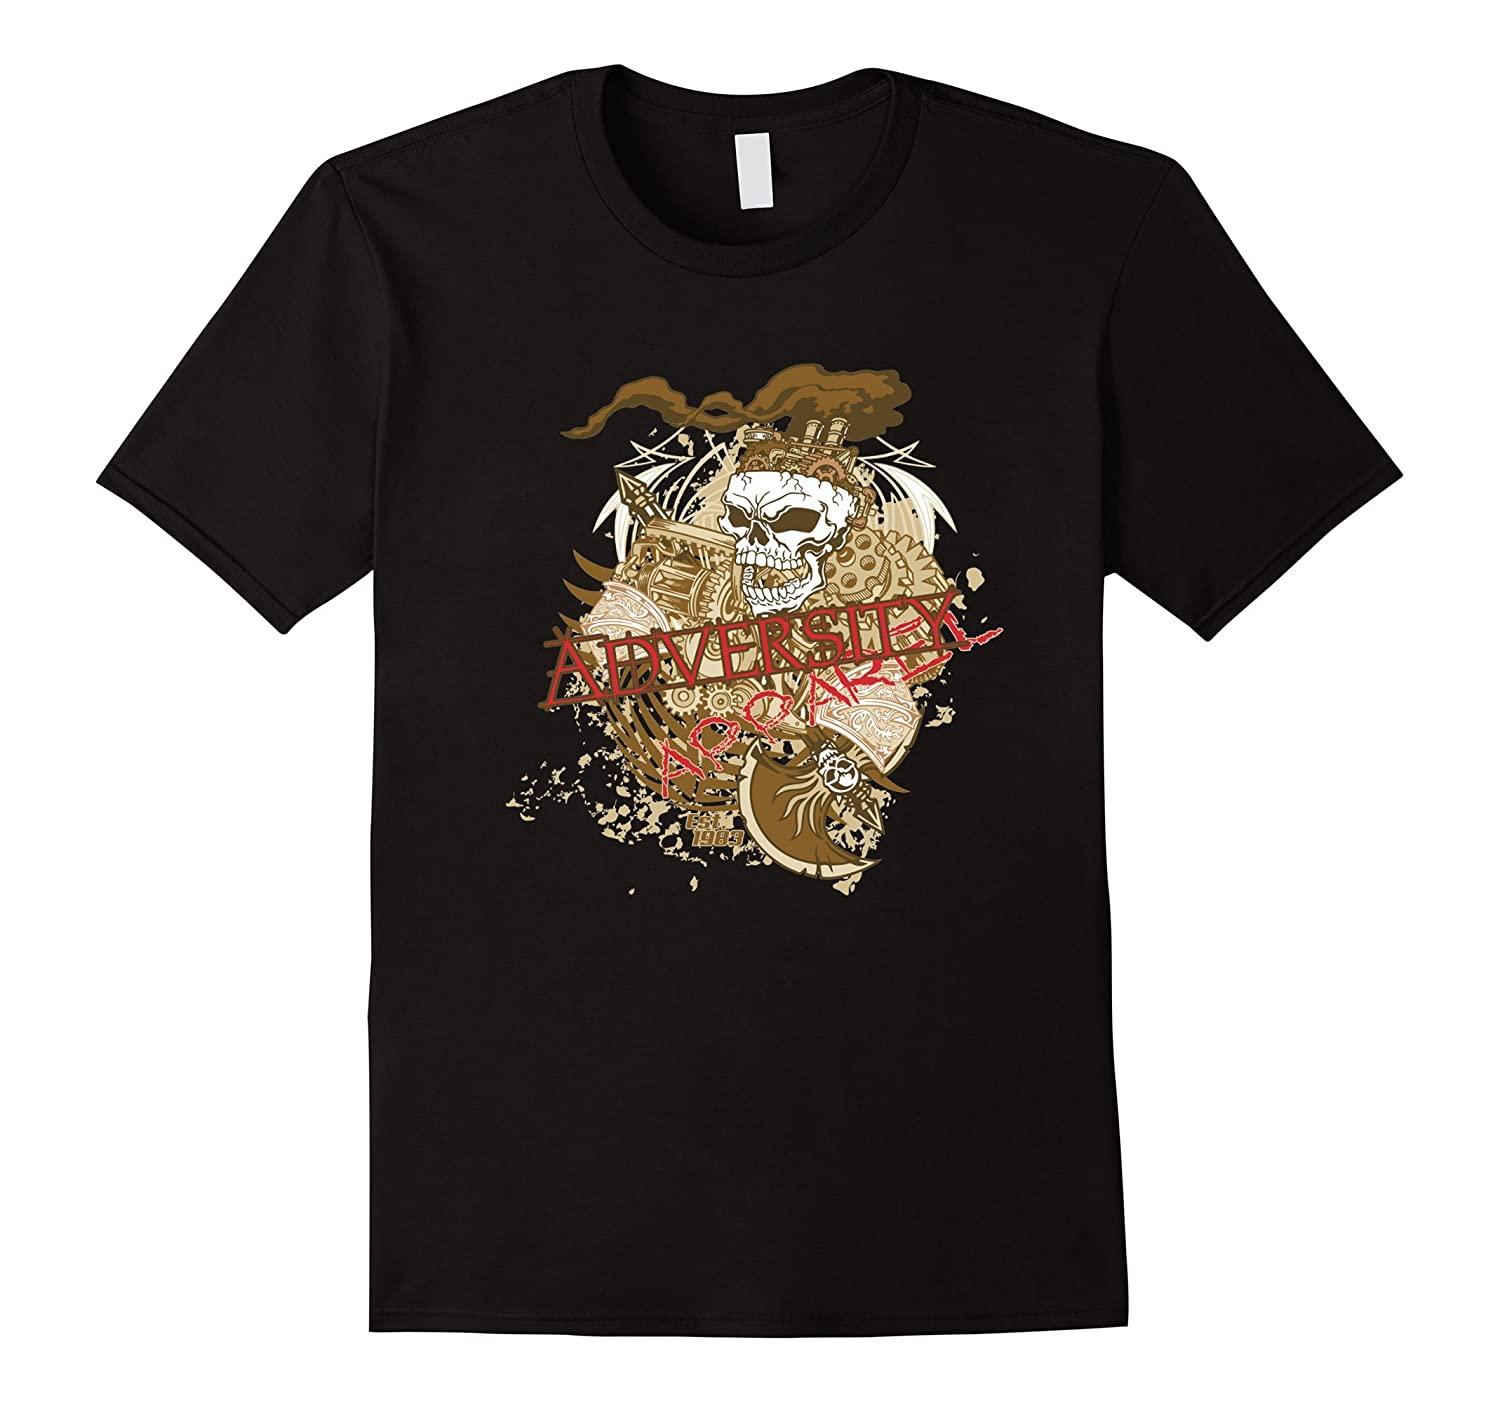 Adversity Apparel T Shirts For Women Graphic Tees For Men-Art